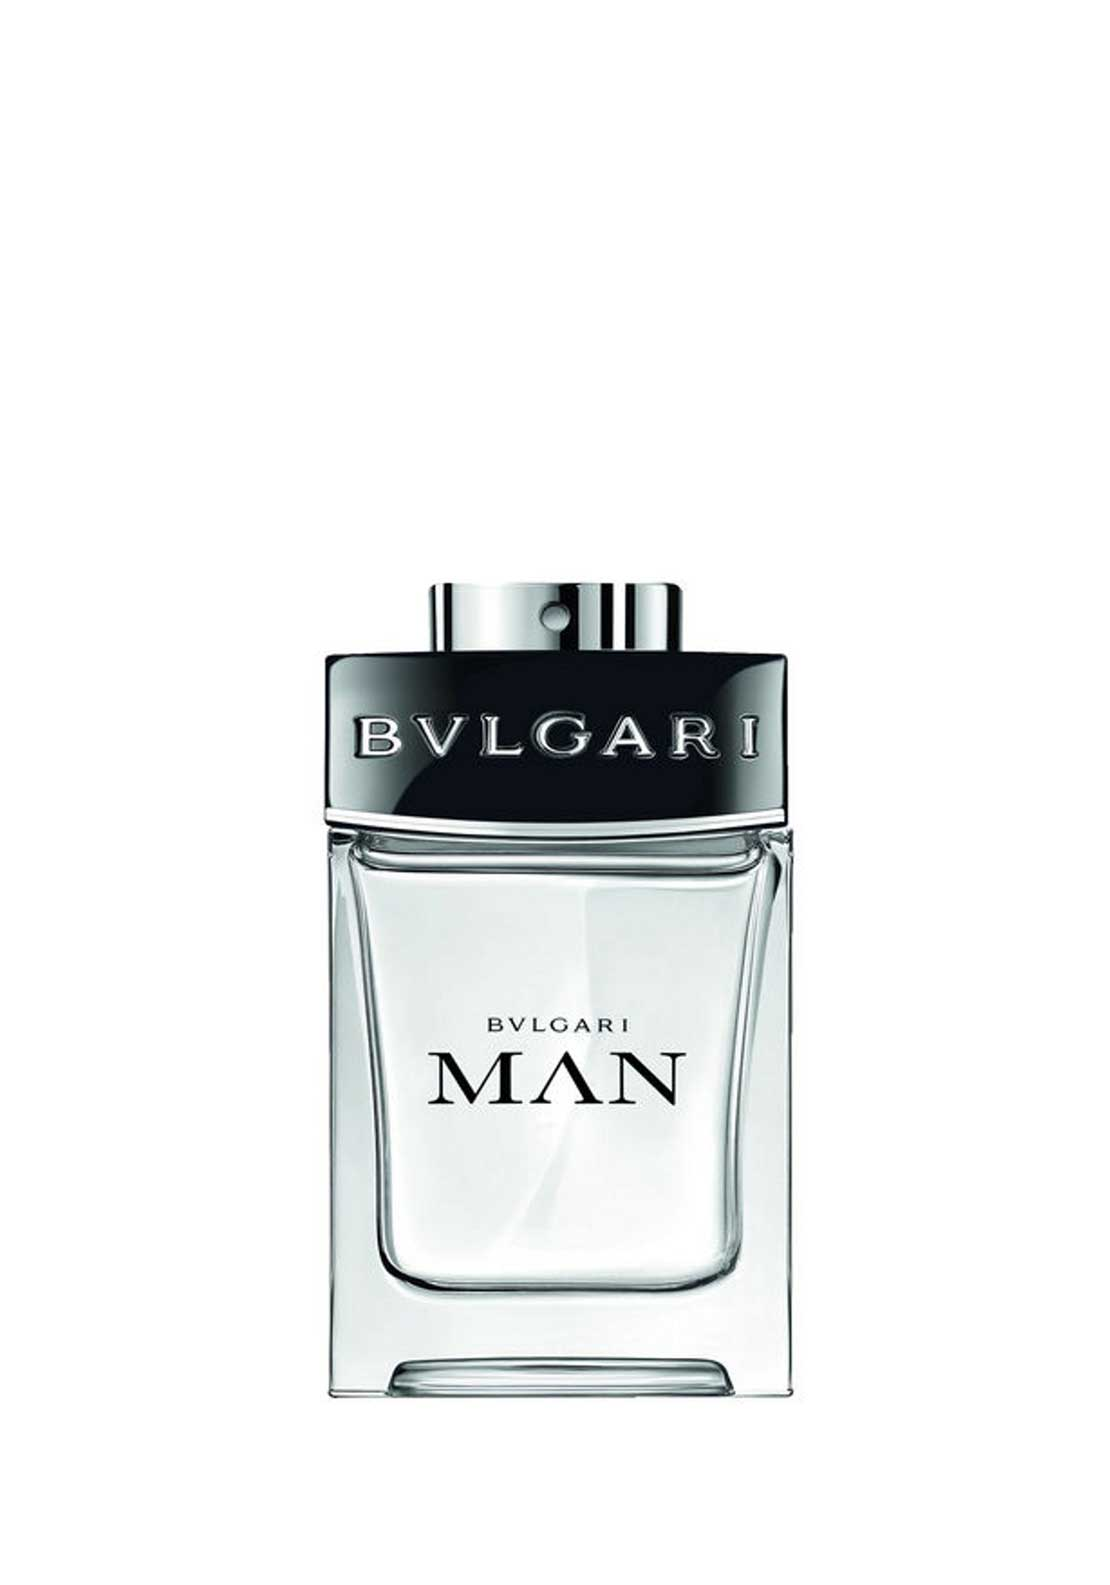 Bvlgari Man for him, 30ml